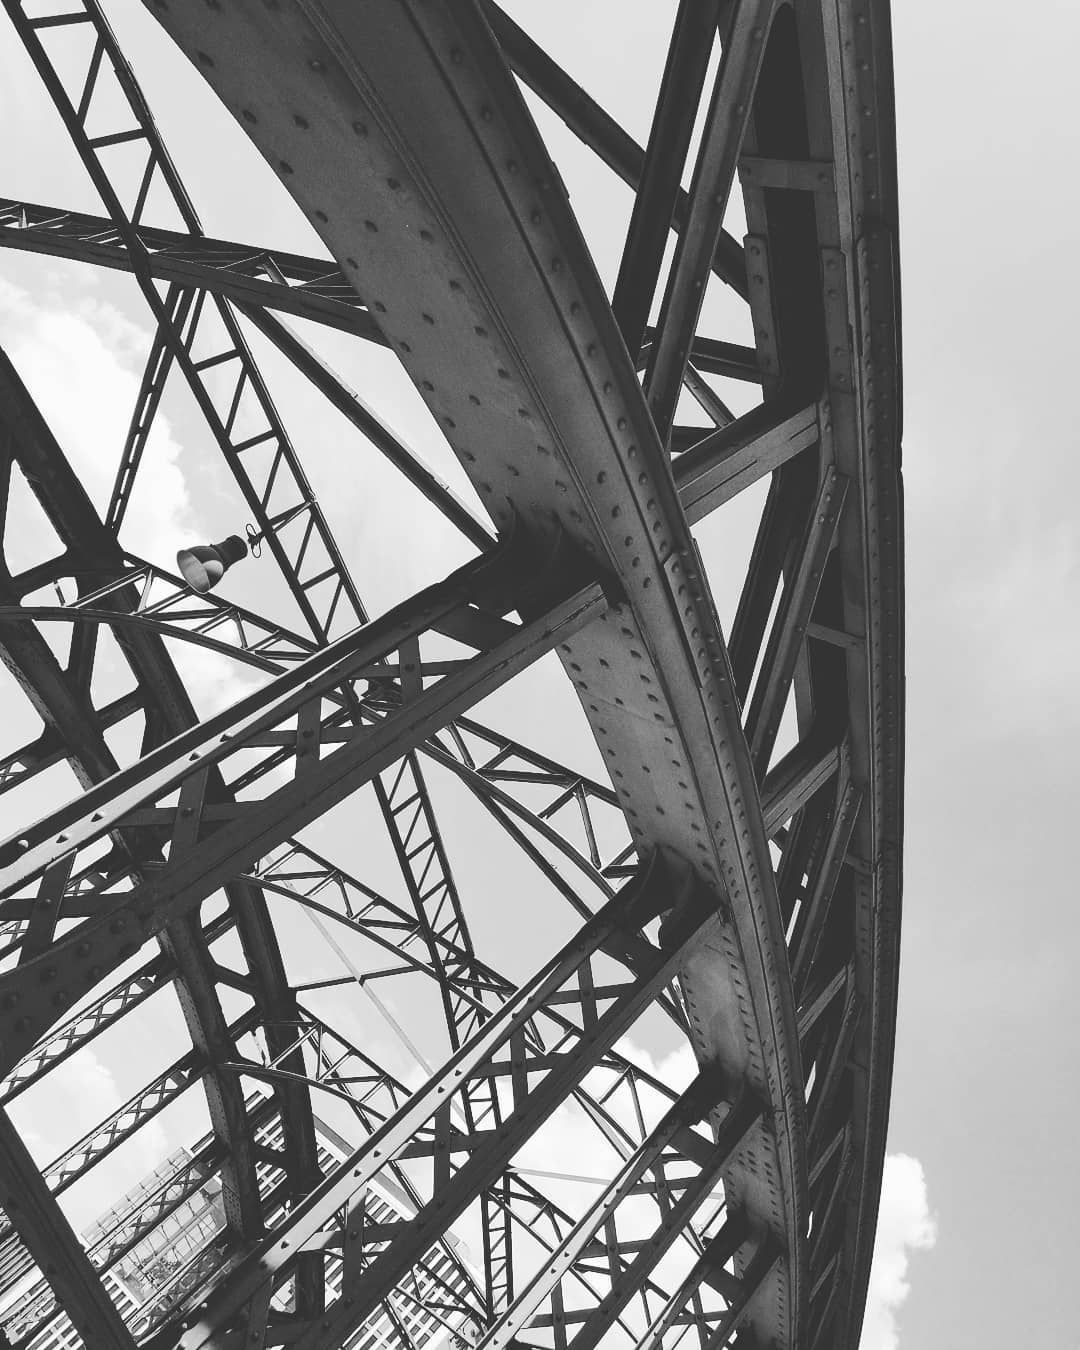 discovering the district  #strolling #munich #bridge #metalstuds #b&w #metalwork #metallic #industrial #architecture #oldfashioned #germany #metalstructure #strolling #framing #picoftheday #subjectivelyobjective #engineering